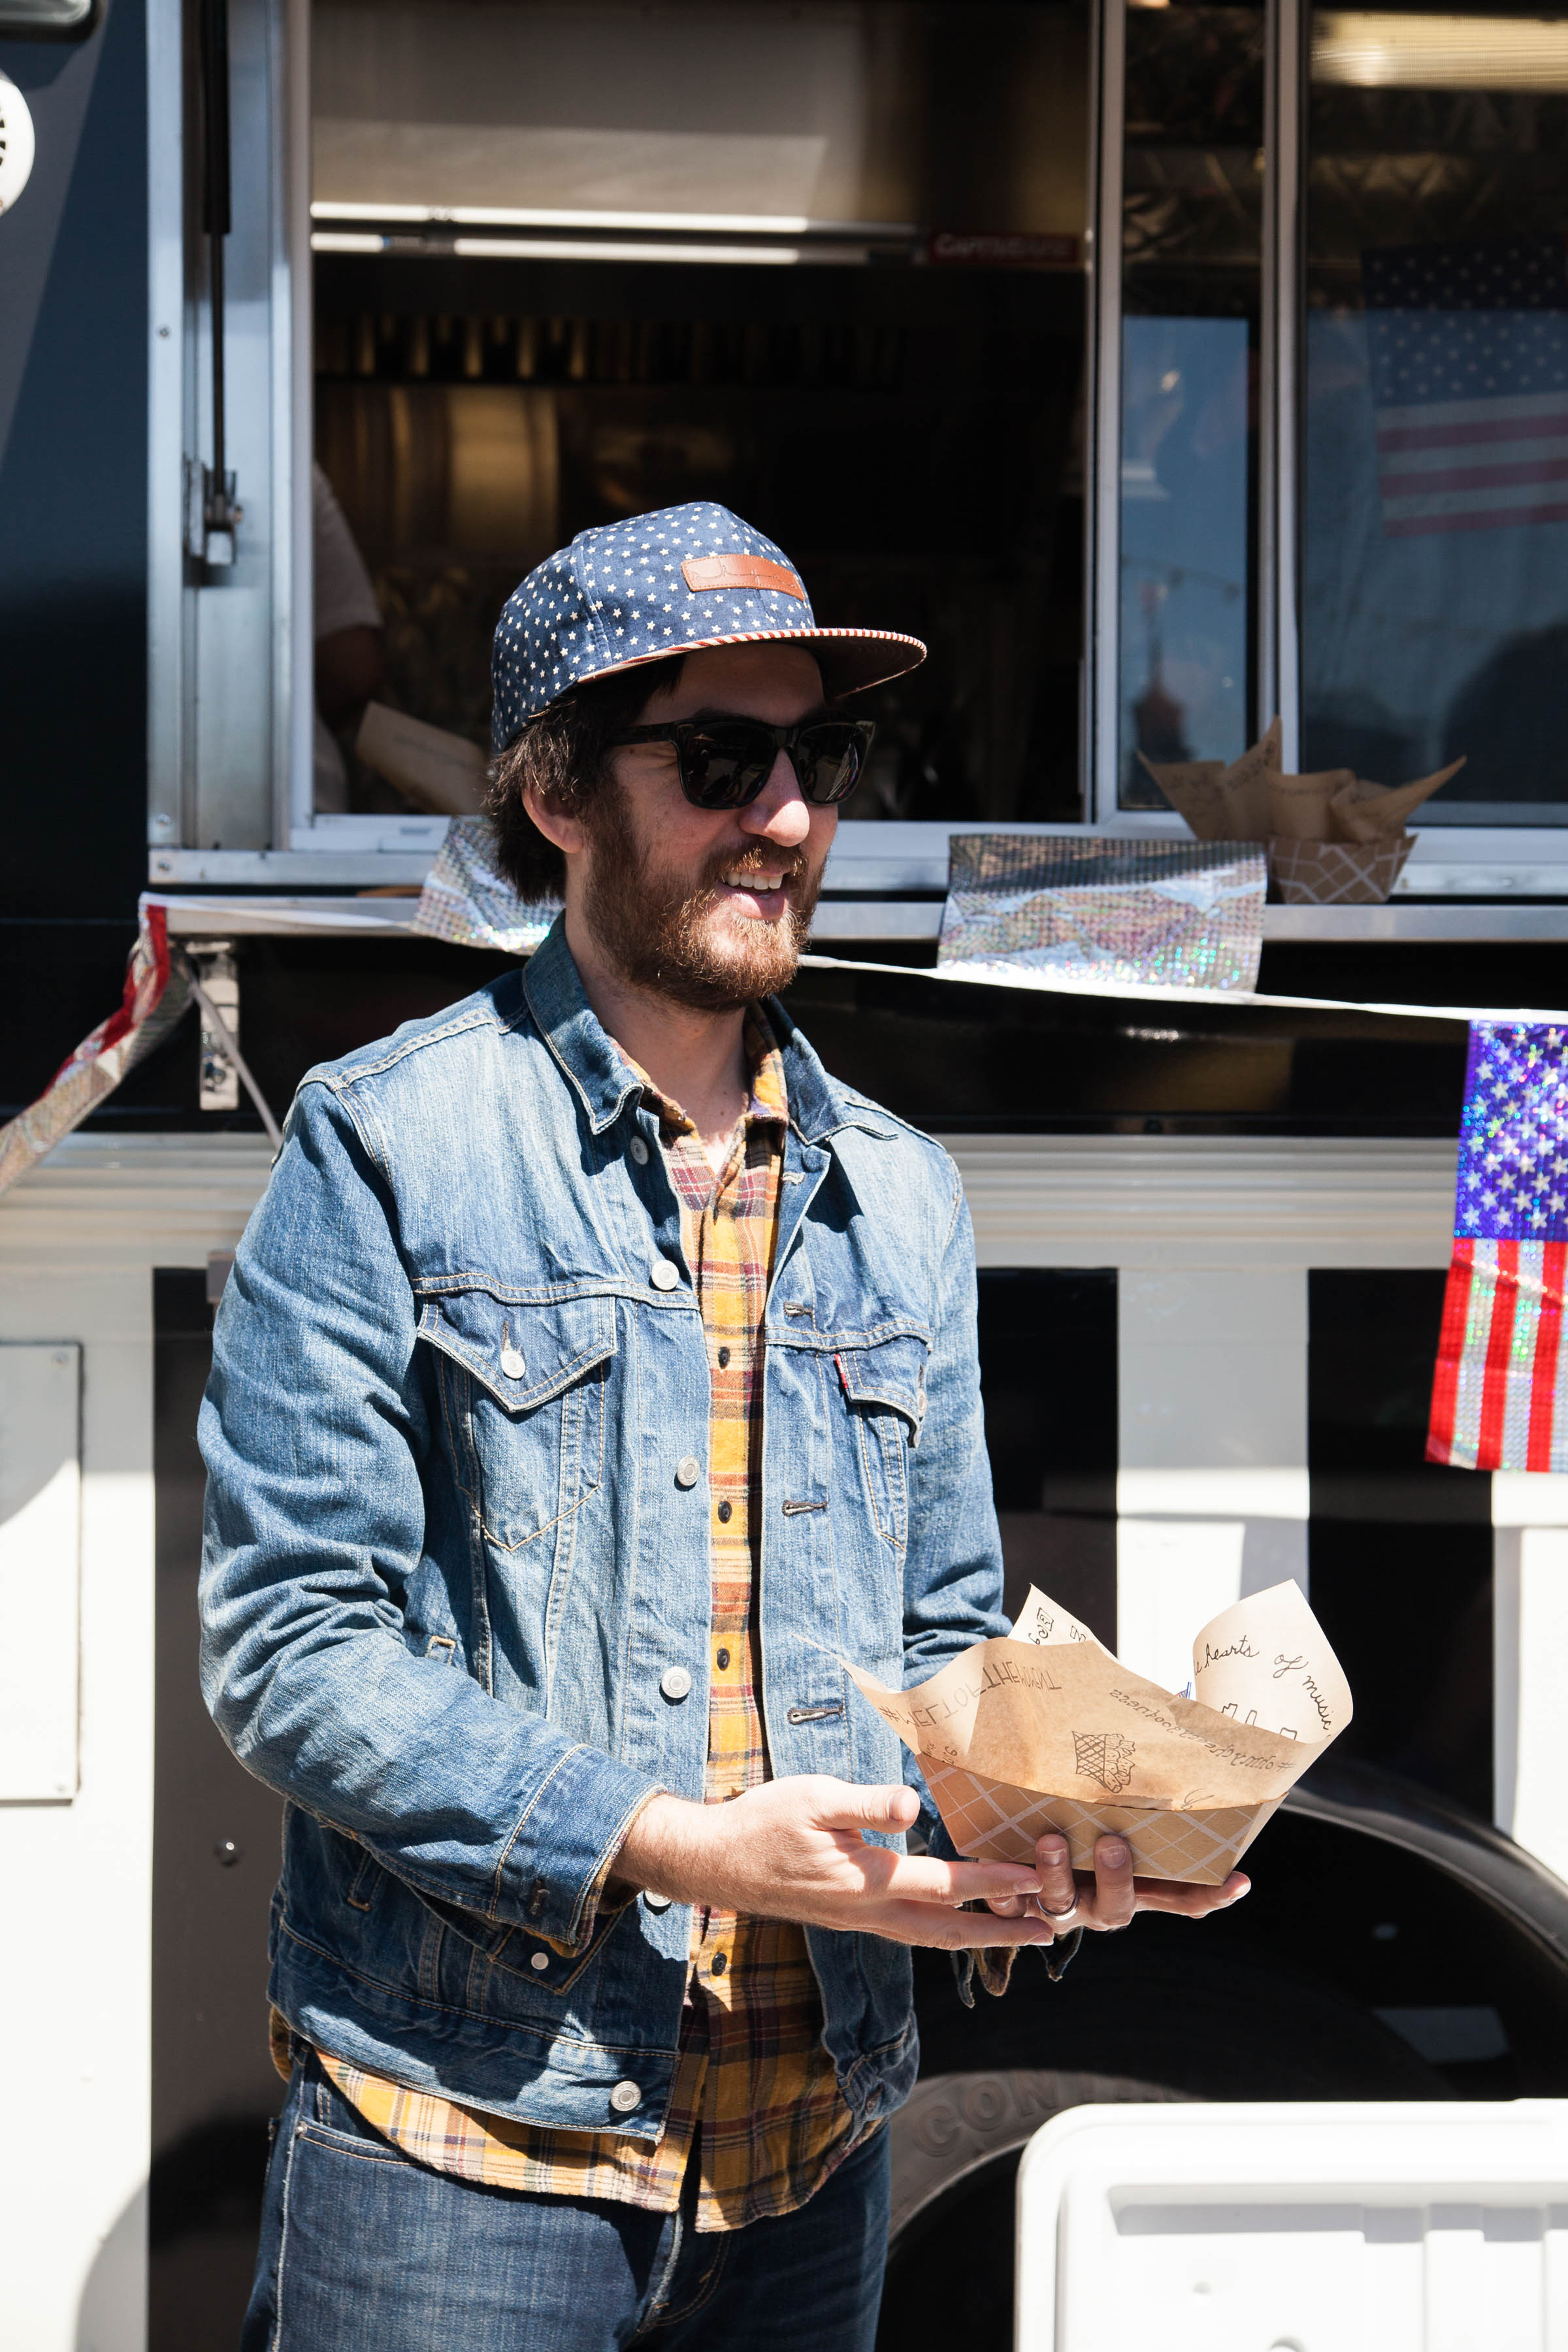 Our Co-Owner Joseph handing out free grilled cheeses